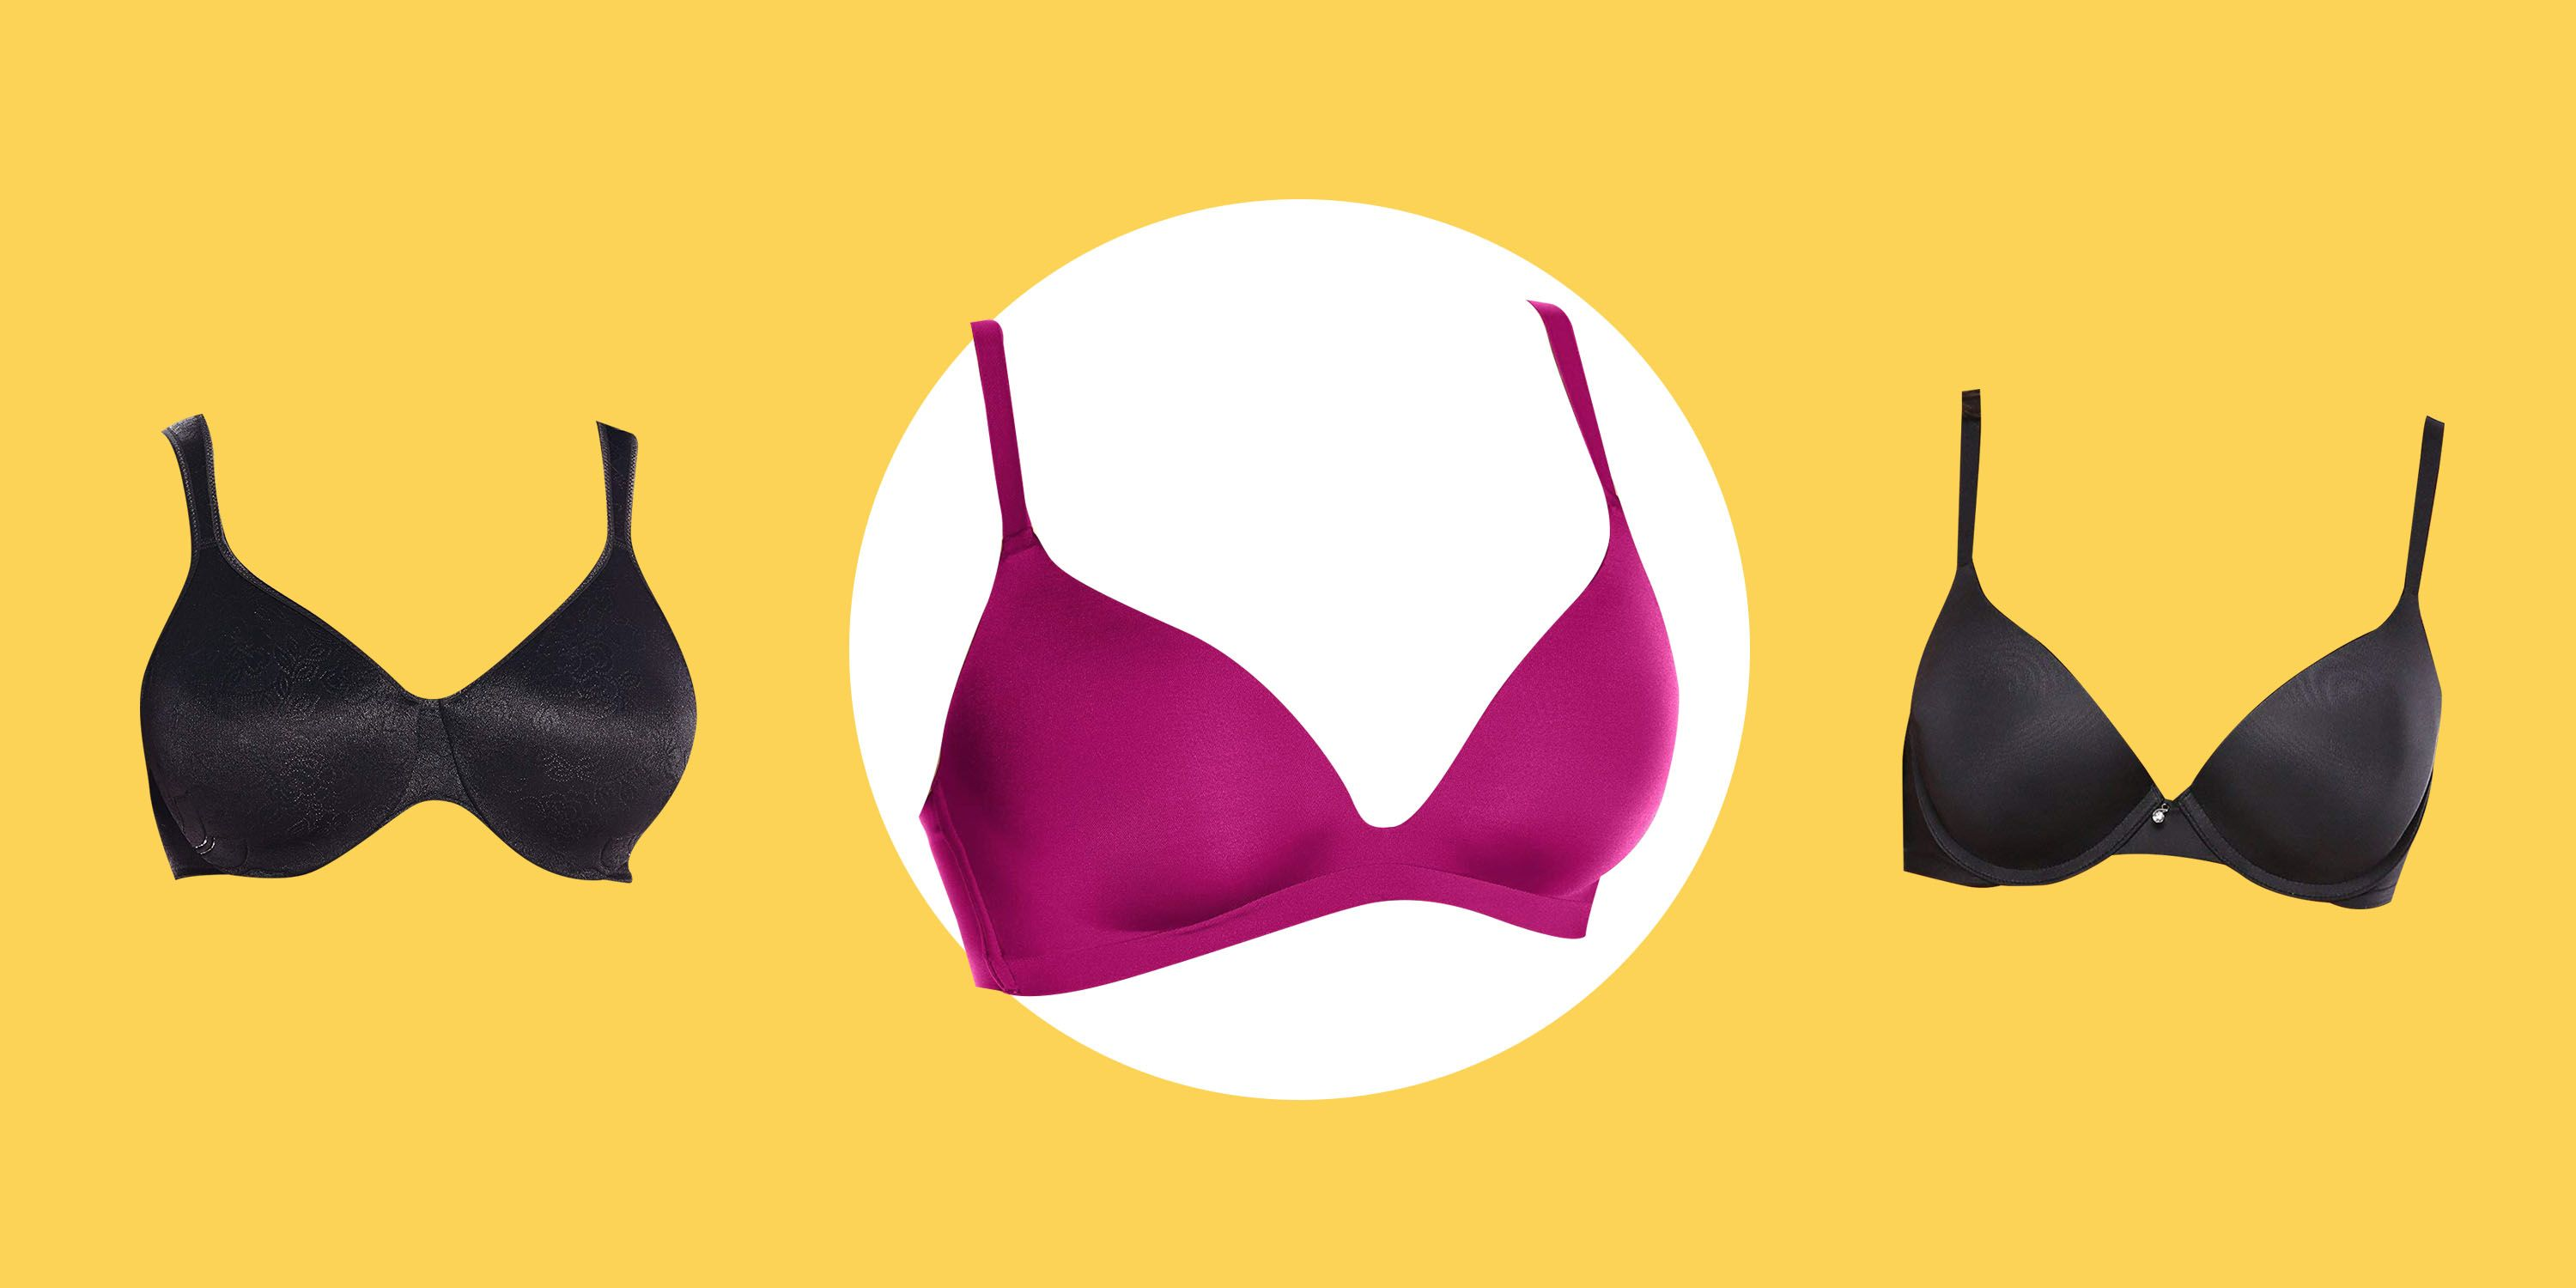 ee246c8b83 10 Most Comfortable Bras for Women 2019 - Best Bra for Support and Lift